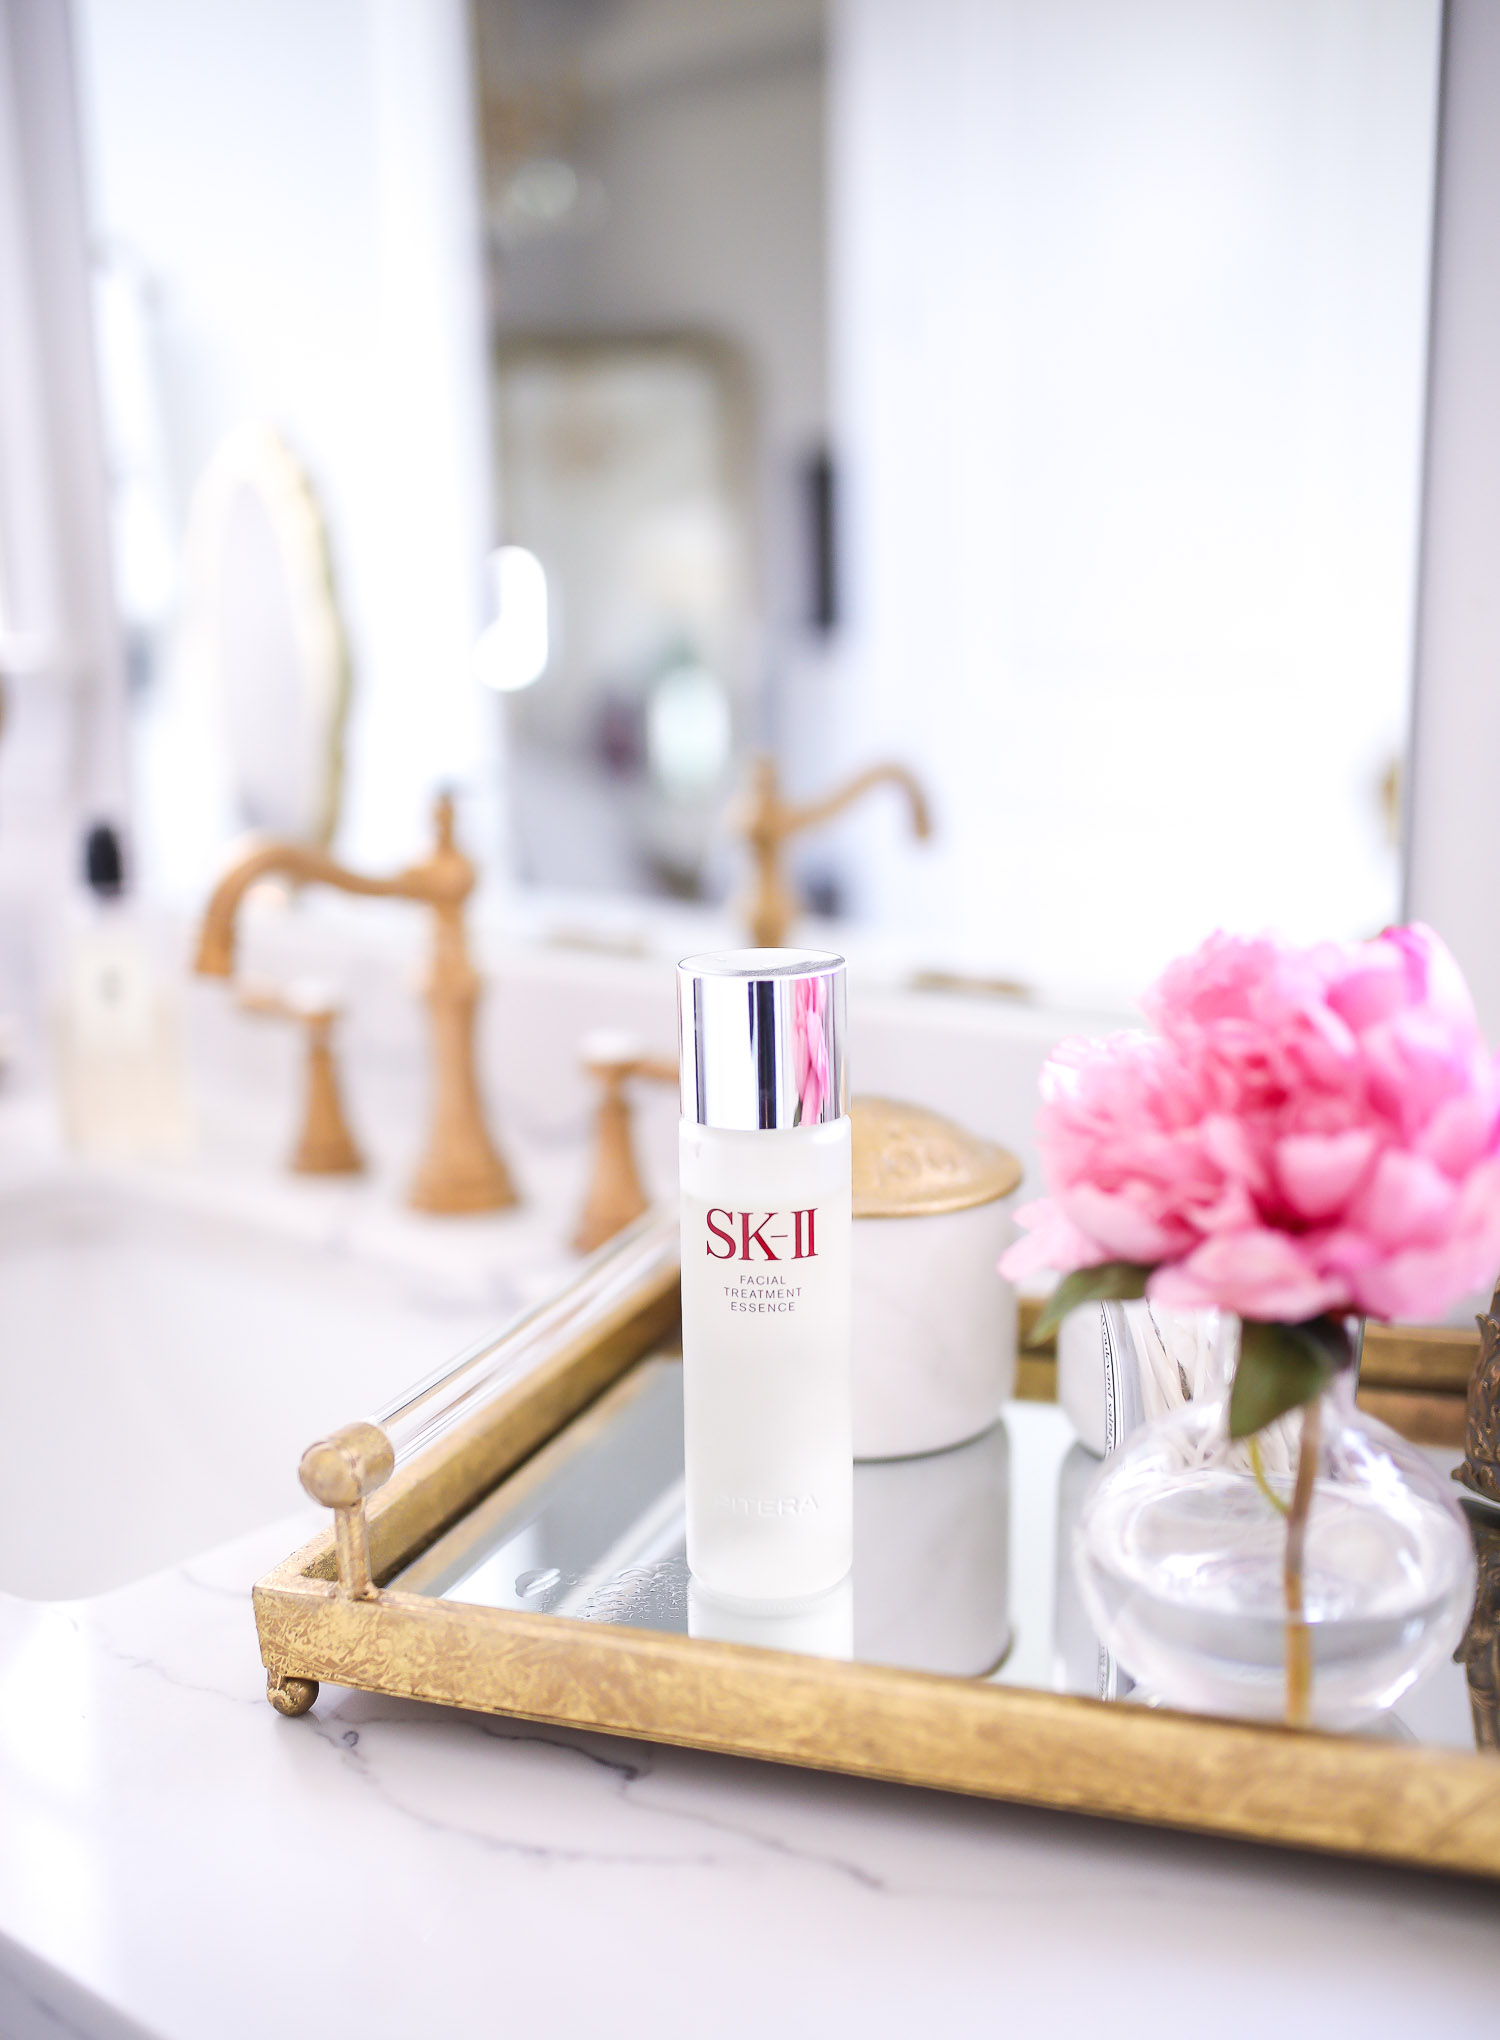 Sephora Spring VIB event april 2020, SKII pitera essence review, emily gemma skincare, beauty blogger | SK II Pitera Essence by popular US beauty blog, The Sweetest Thing: image of a bottle of SK II Pitera Essence.